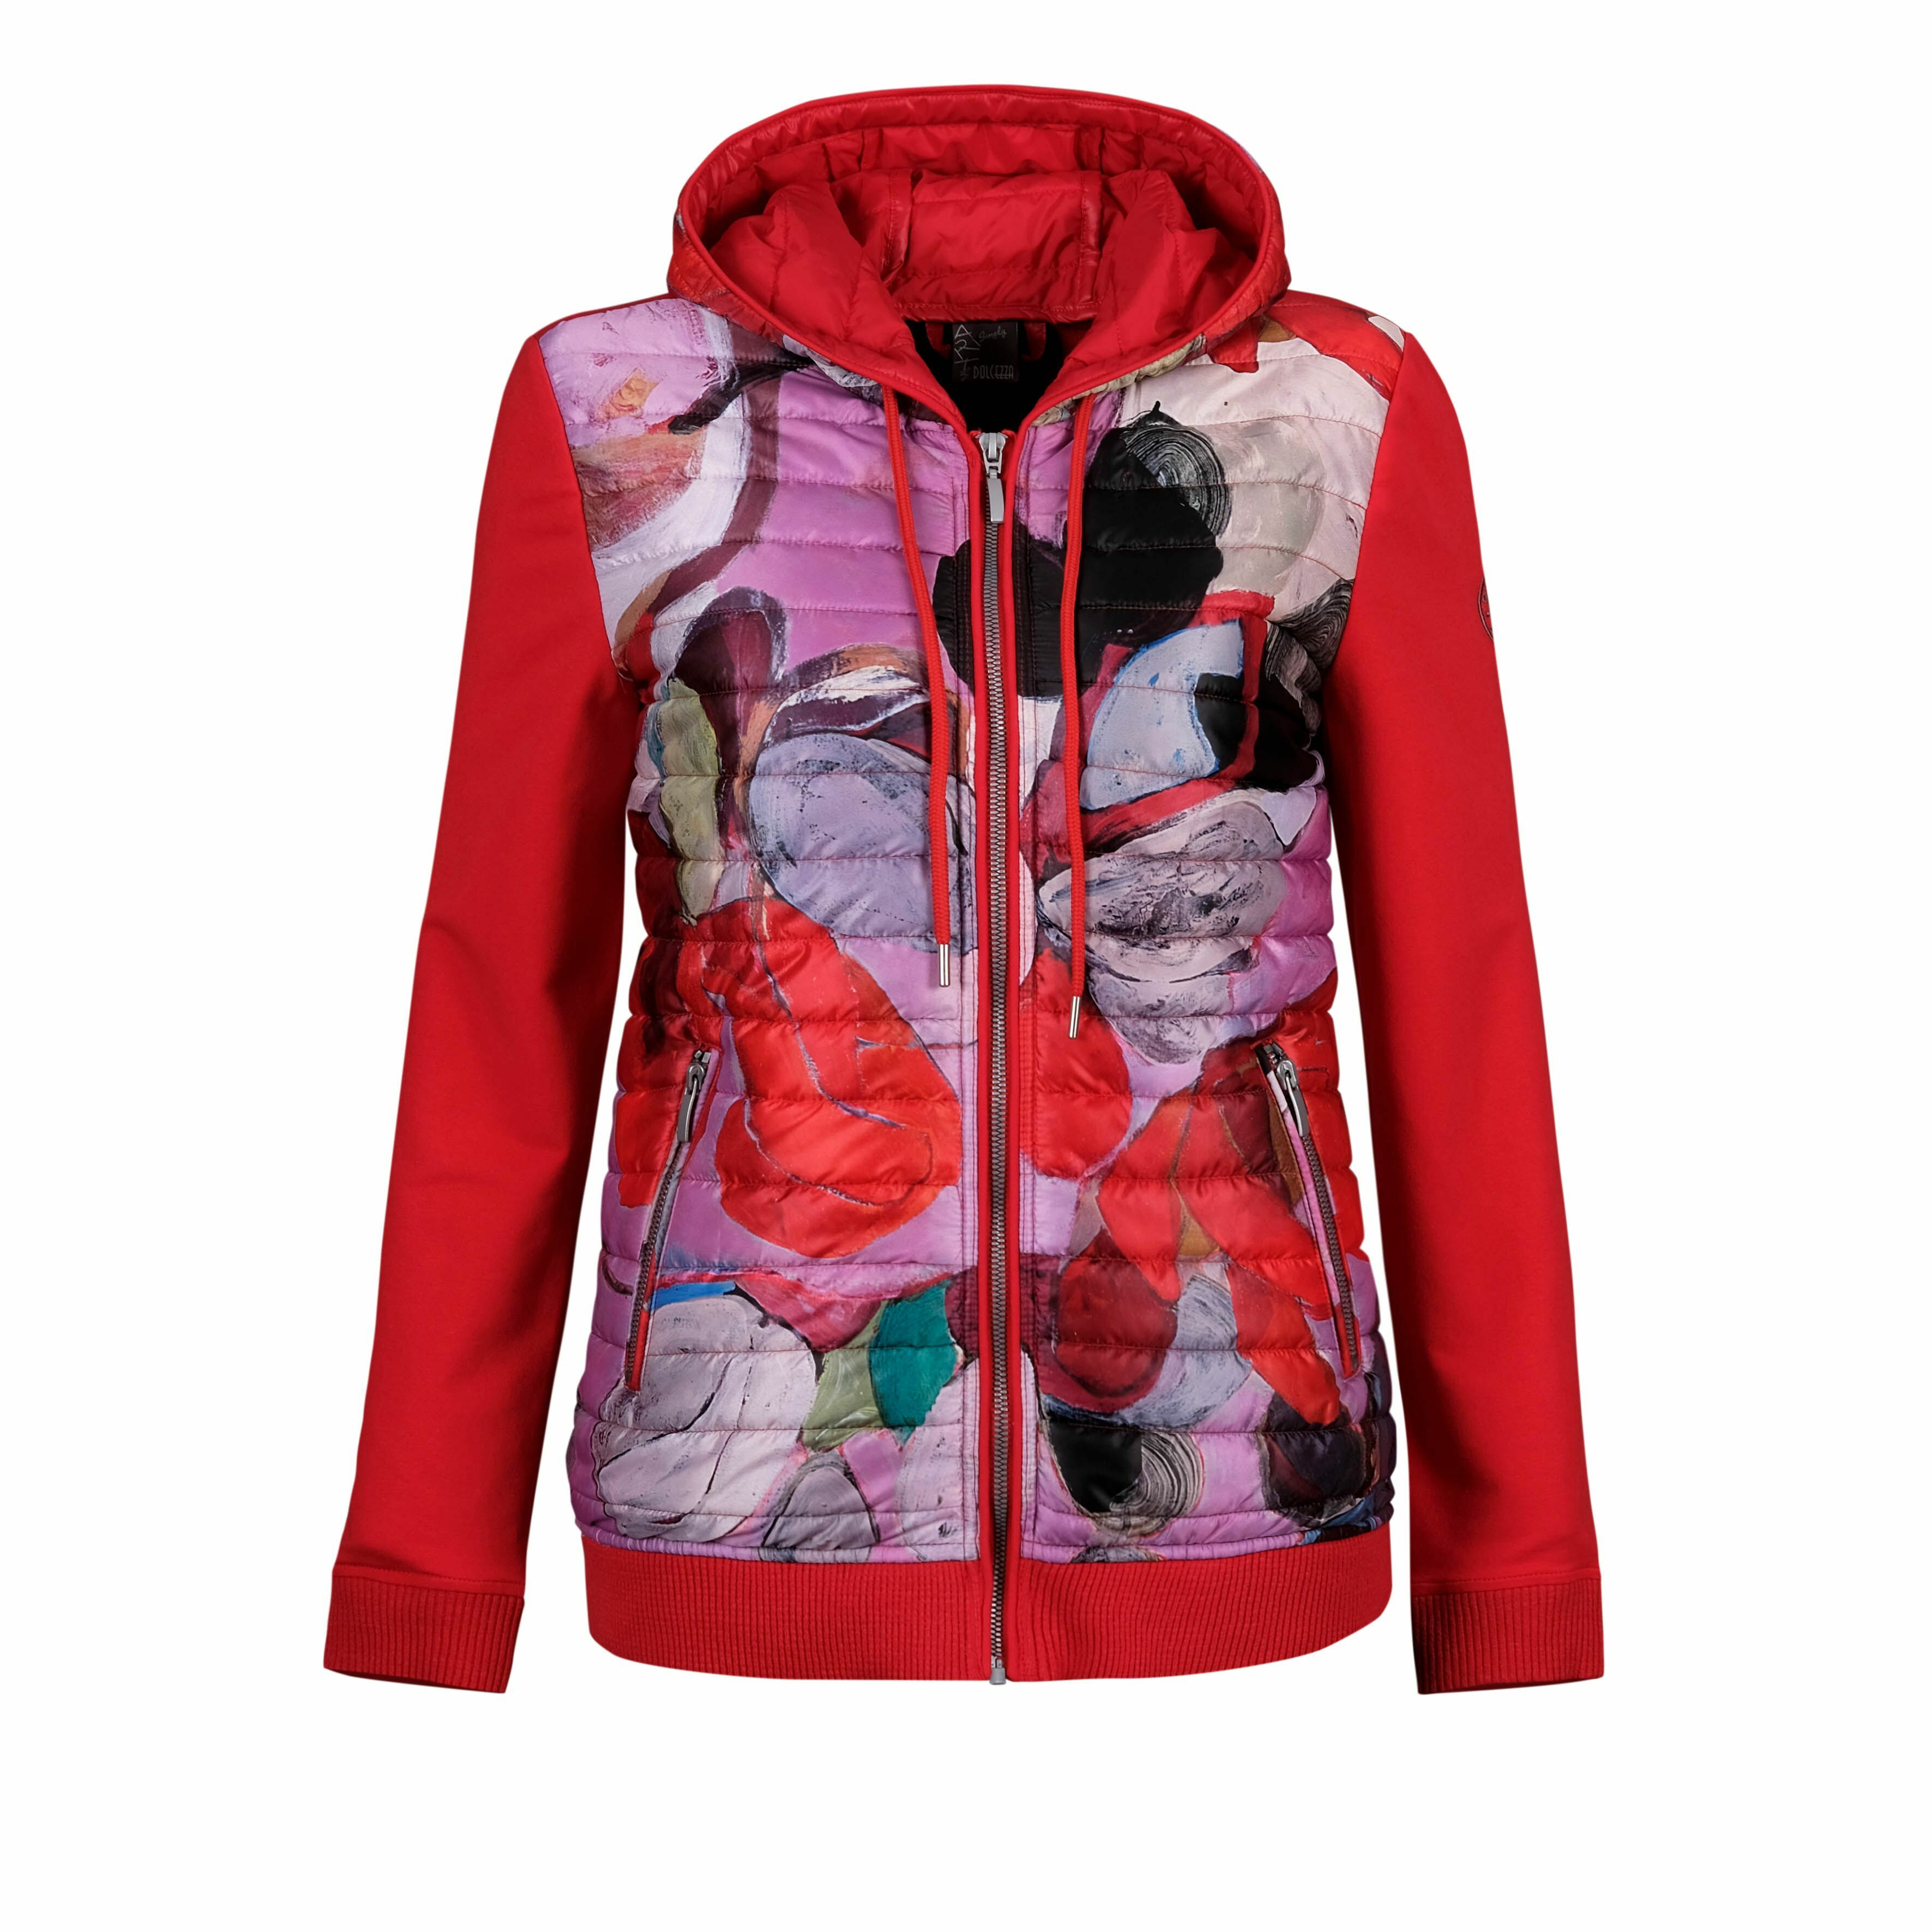 Simply Art Dolcezza: Blooms In Rouge Abstract Art Puff Hoodie Jacket (2 Left!) DOLCEZZA_SIMPLYART_20811_N